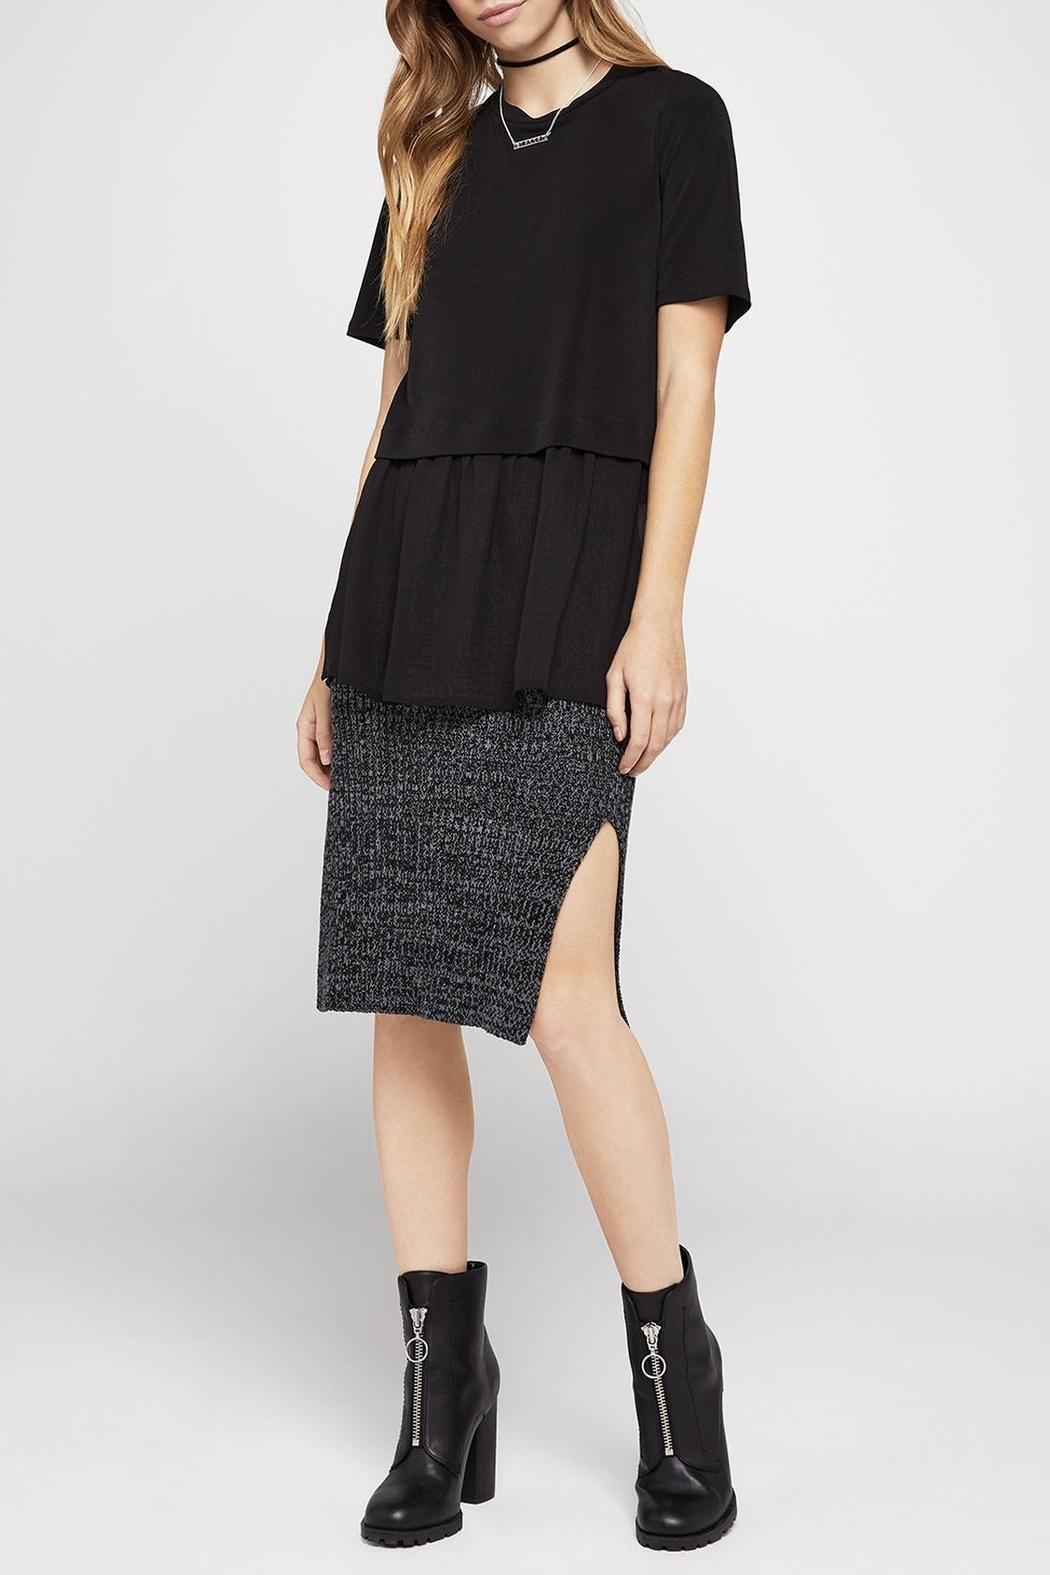 BCBGeneration Short-Sleeve Mixed-Media Top - Front Cropped Image